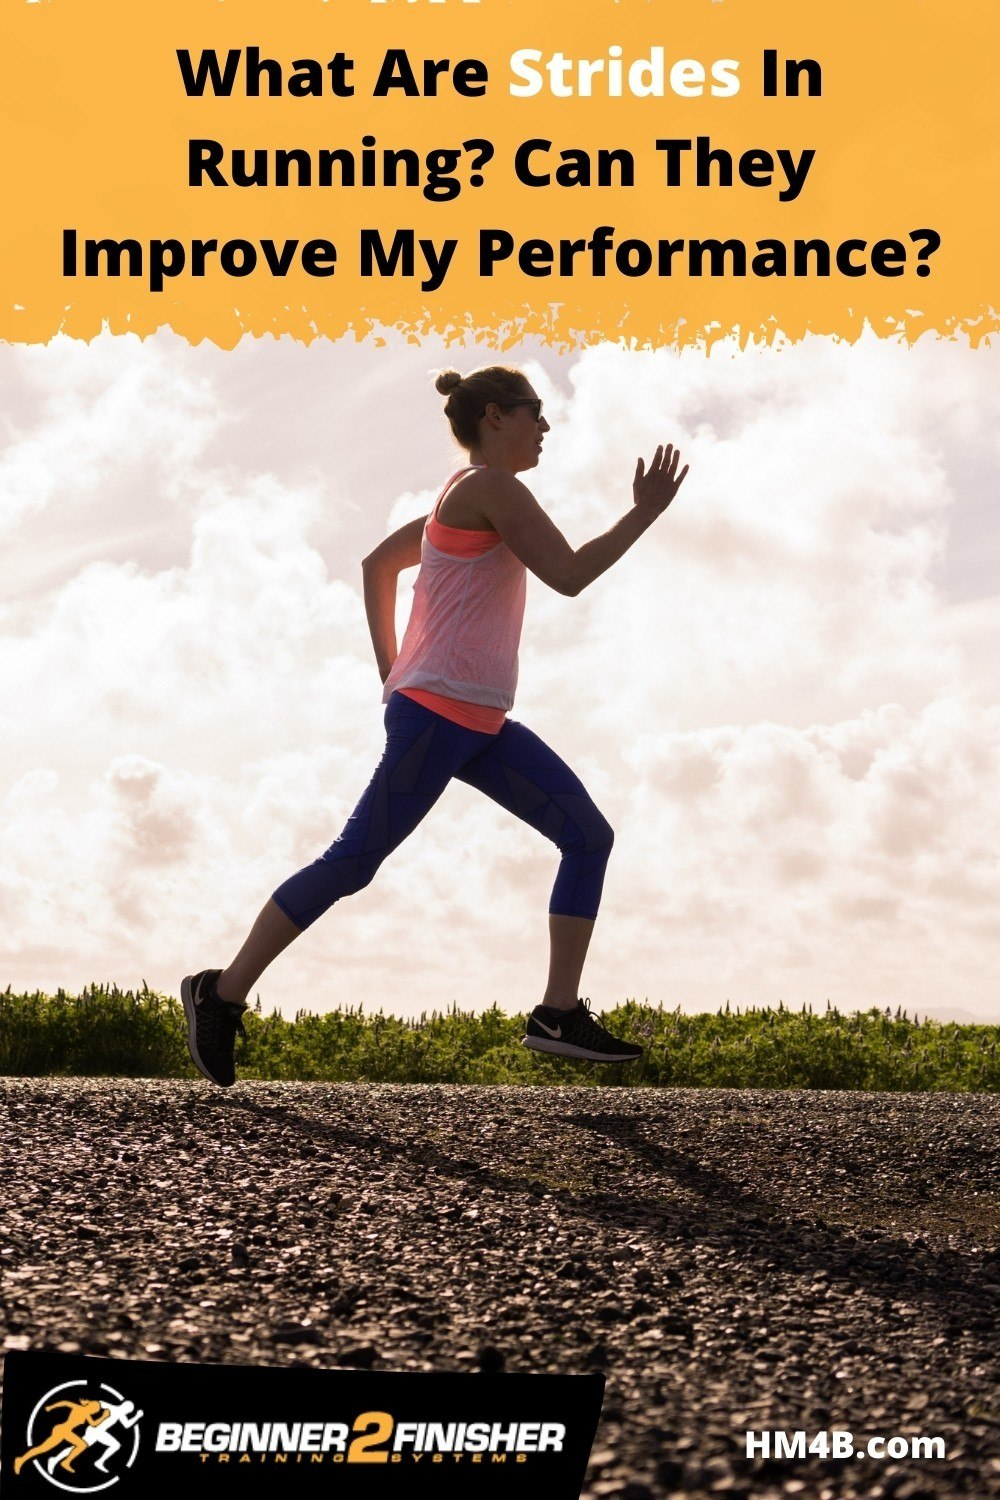 What Are Strides In Running? Can They Improve My Performance?